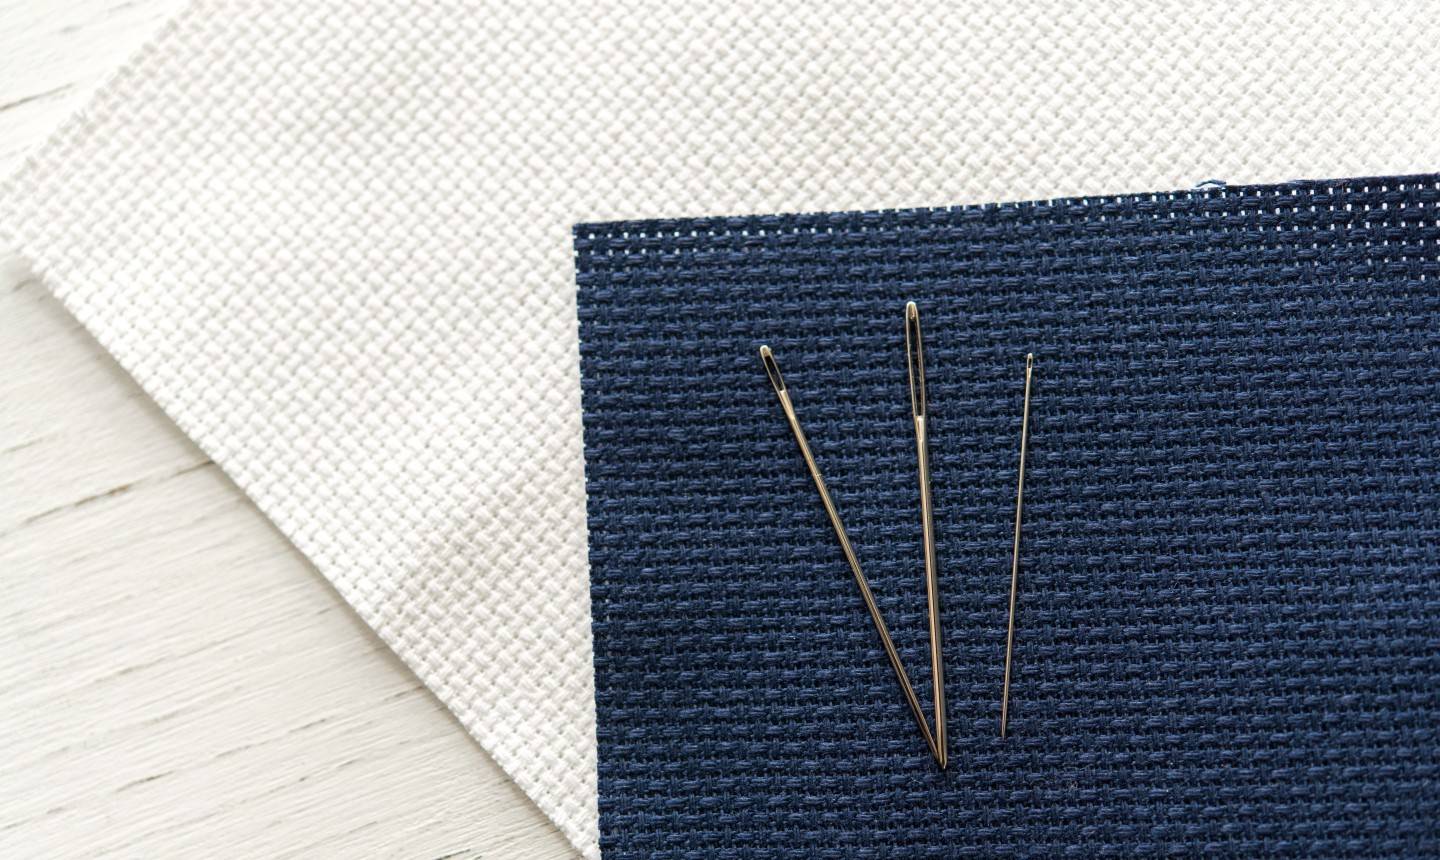 three sewing needles